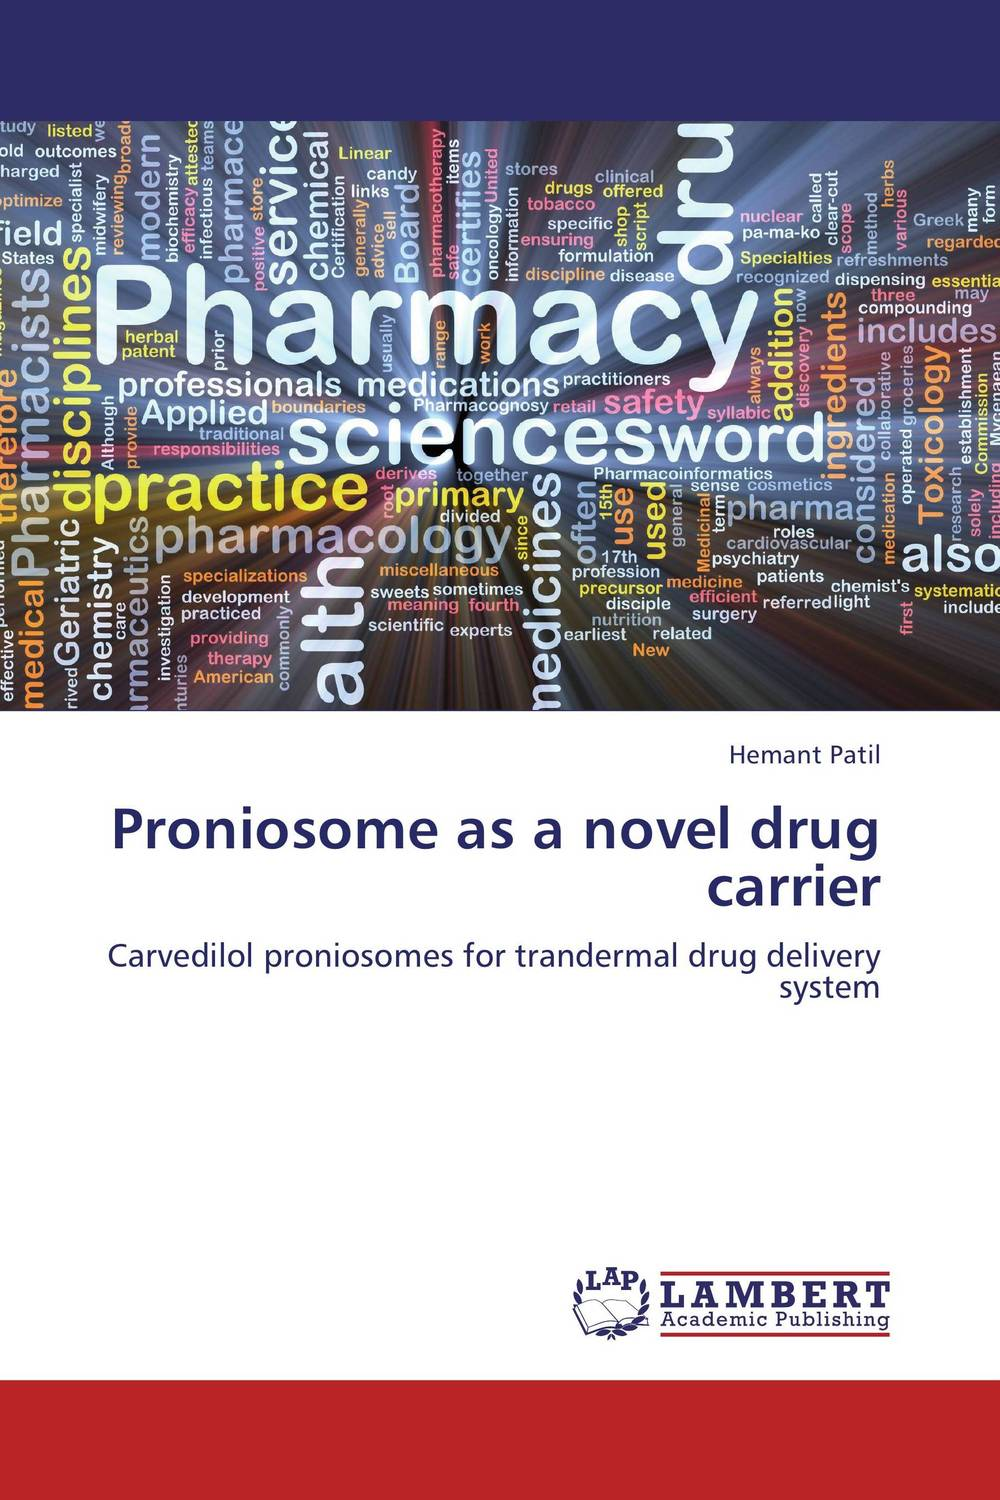 Proniosome as a novel drug carrier the lonely polygamist – a novel